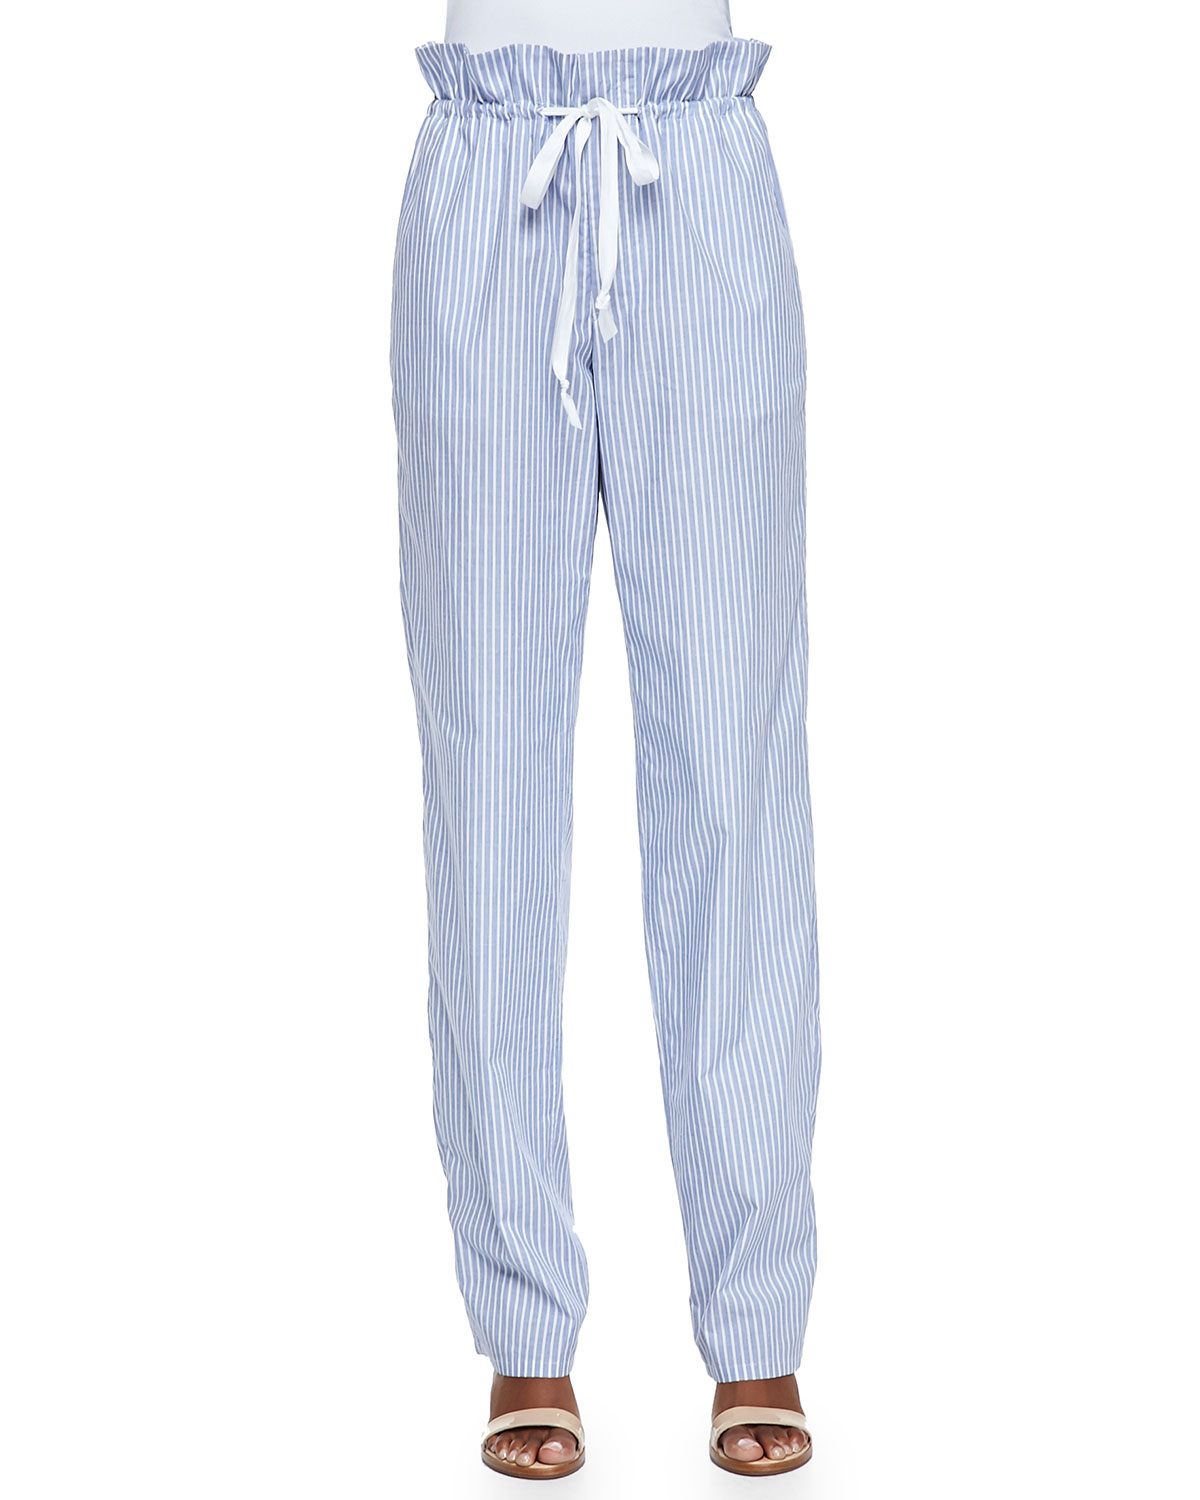 TROUSERS - Casual trousers Adam Lippes wNWlwP8Q